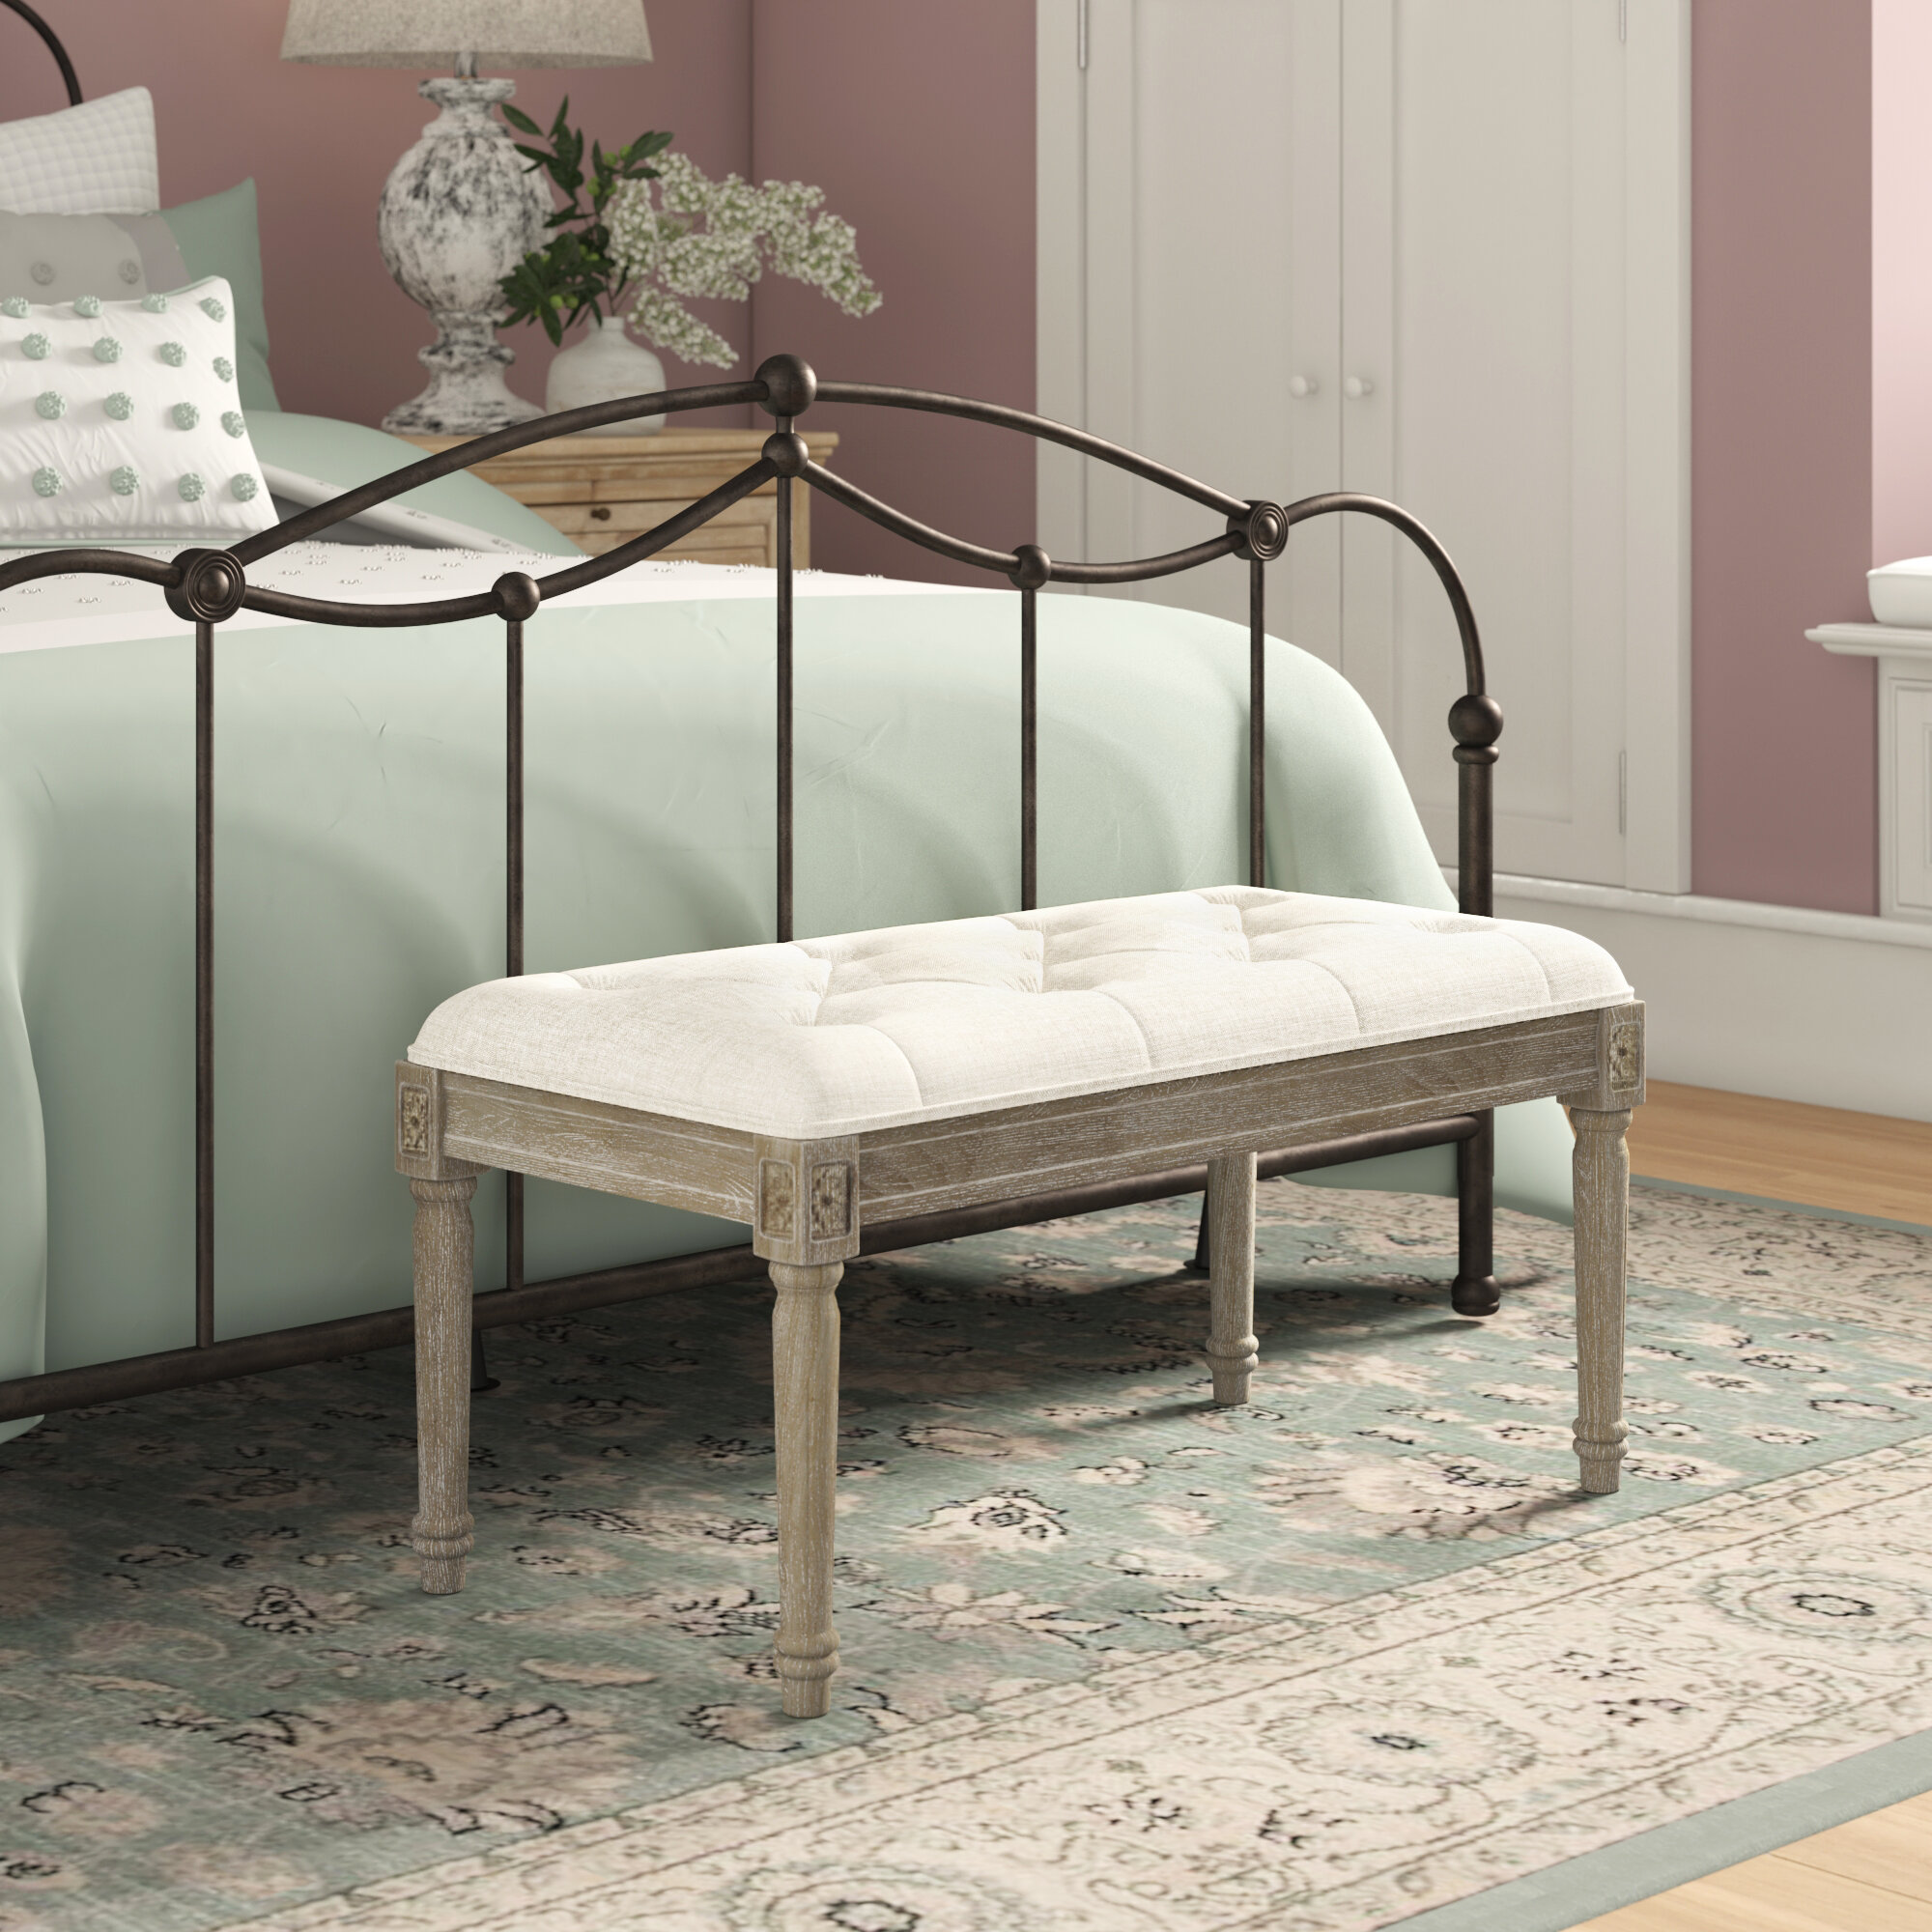 Upholstered Ophelia Co Benches You Ll Love In 2021 Wayfair